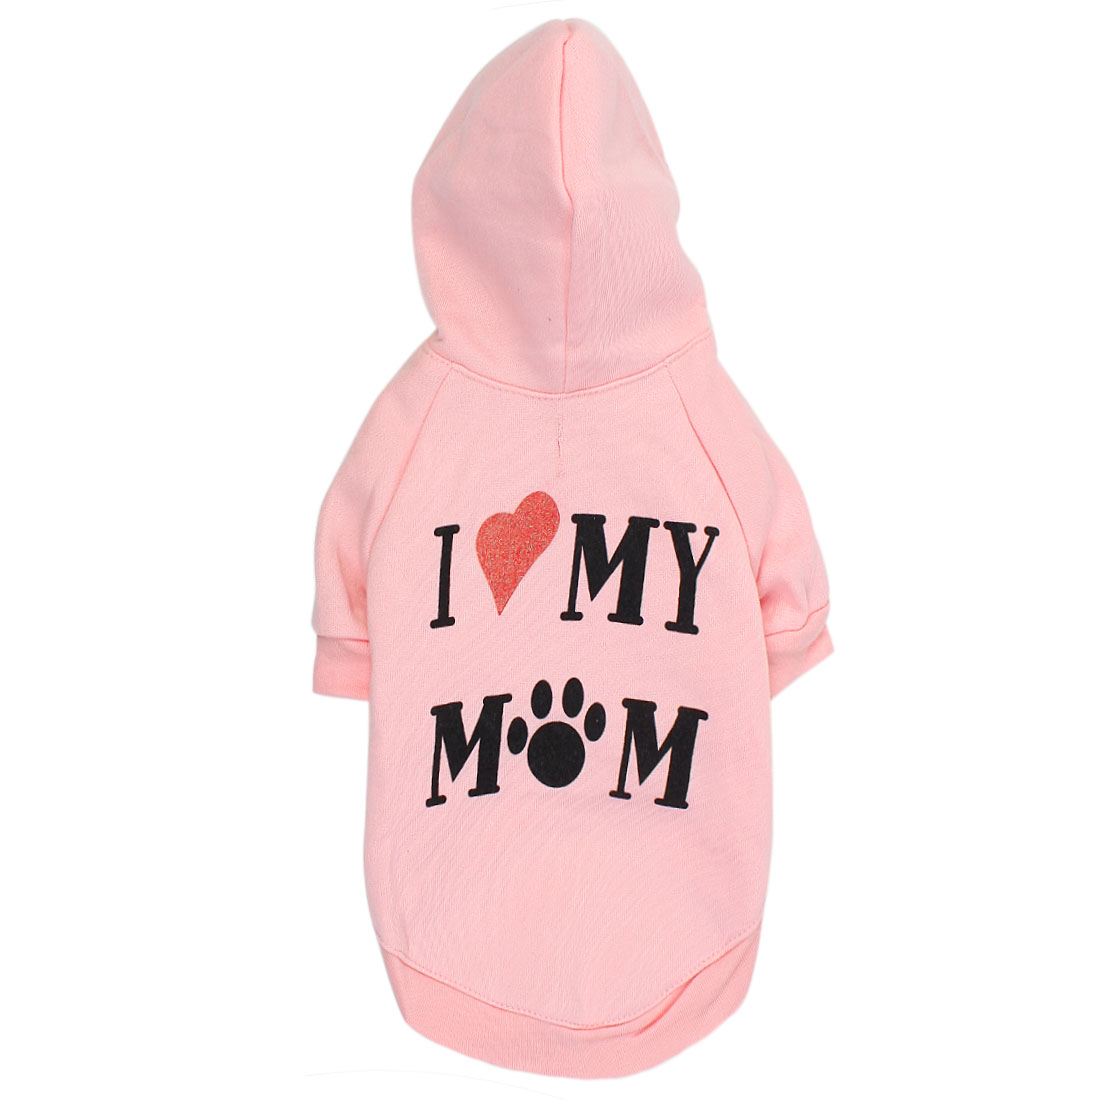 I LOVE MOM Pet Dog Puppy Clothes Hoodie Warm Coat Apparel Costume Pink Size XL